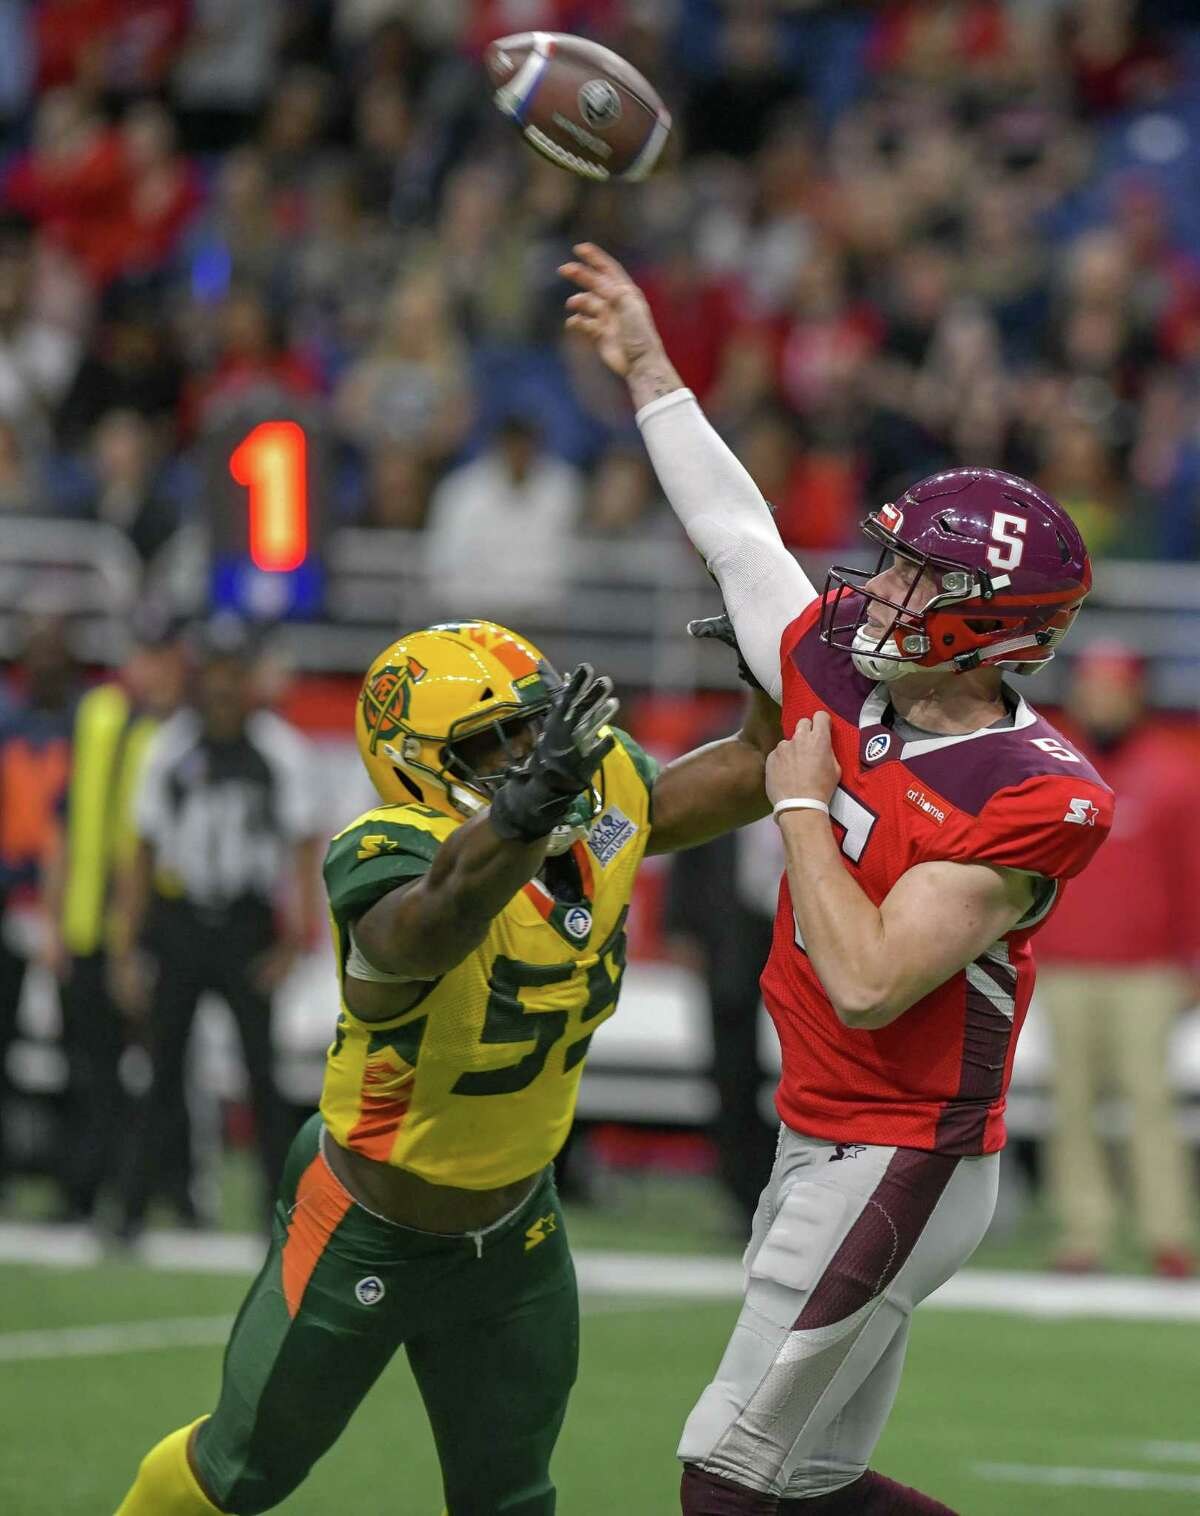 San Antonio Commander's quarterback Logan Woodside (5)is pressured by Steven Johnson (59) during the AAF game against Arizona Hotshots on March 31, 2019 at the Alamodome.